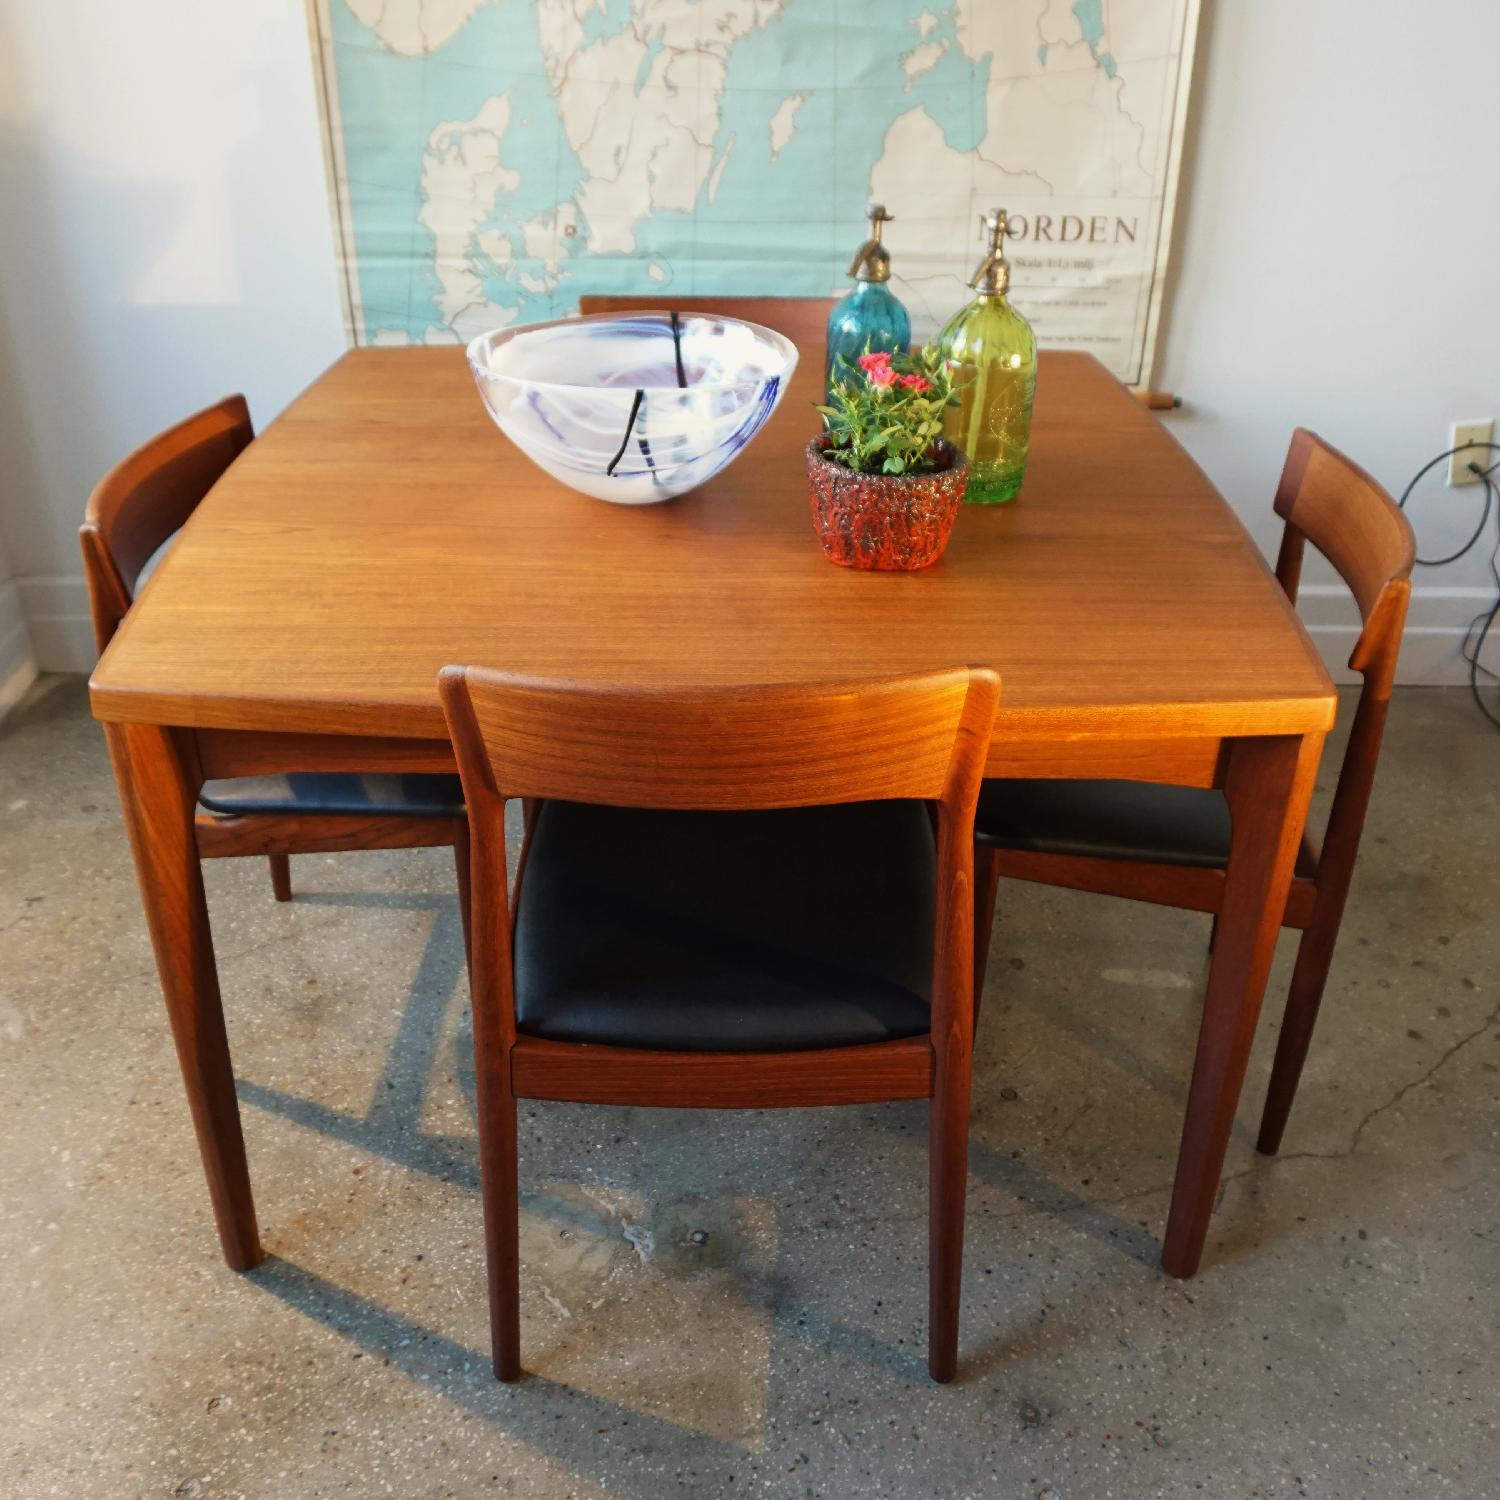 Henning Kjrnulf Extendable Dining Table - image-10